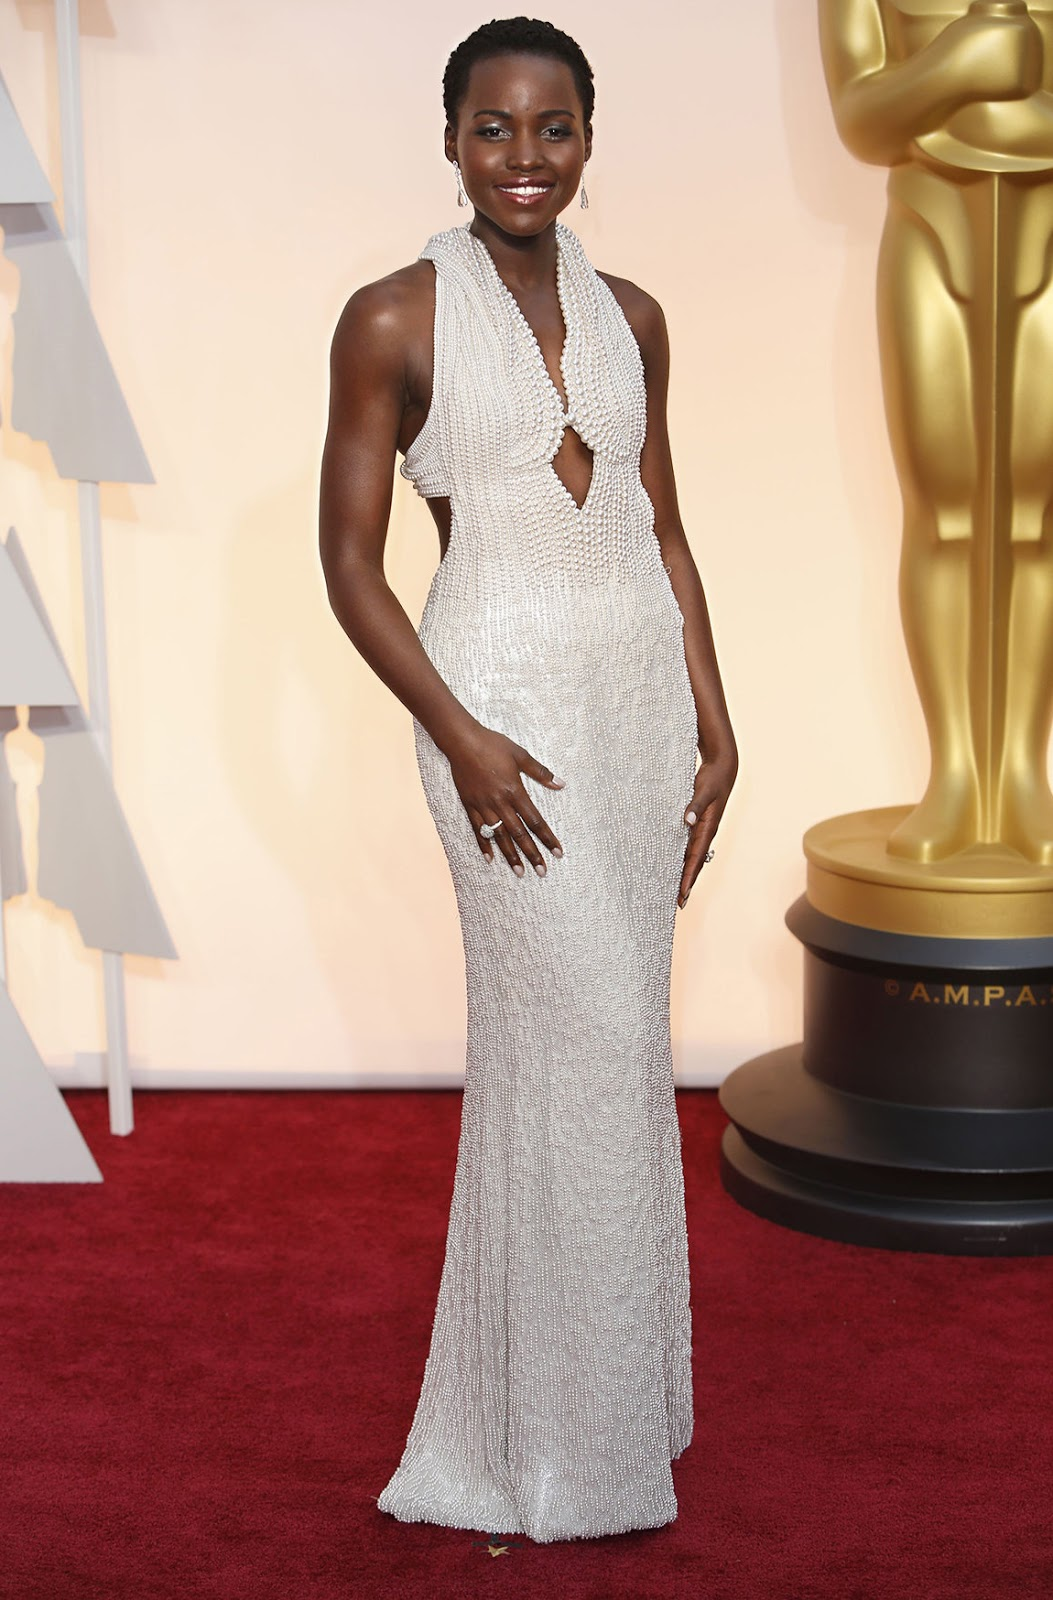 Lupita Nyong'o in Calvin Klein at the Oscars 2015